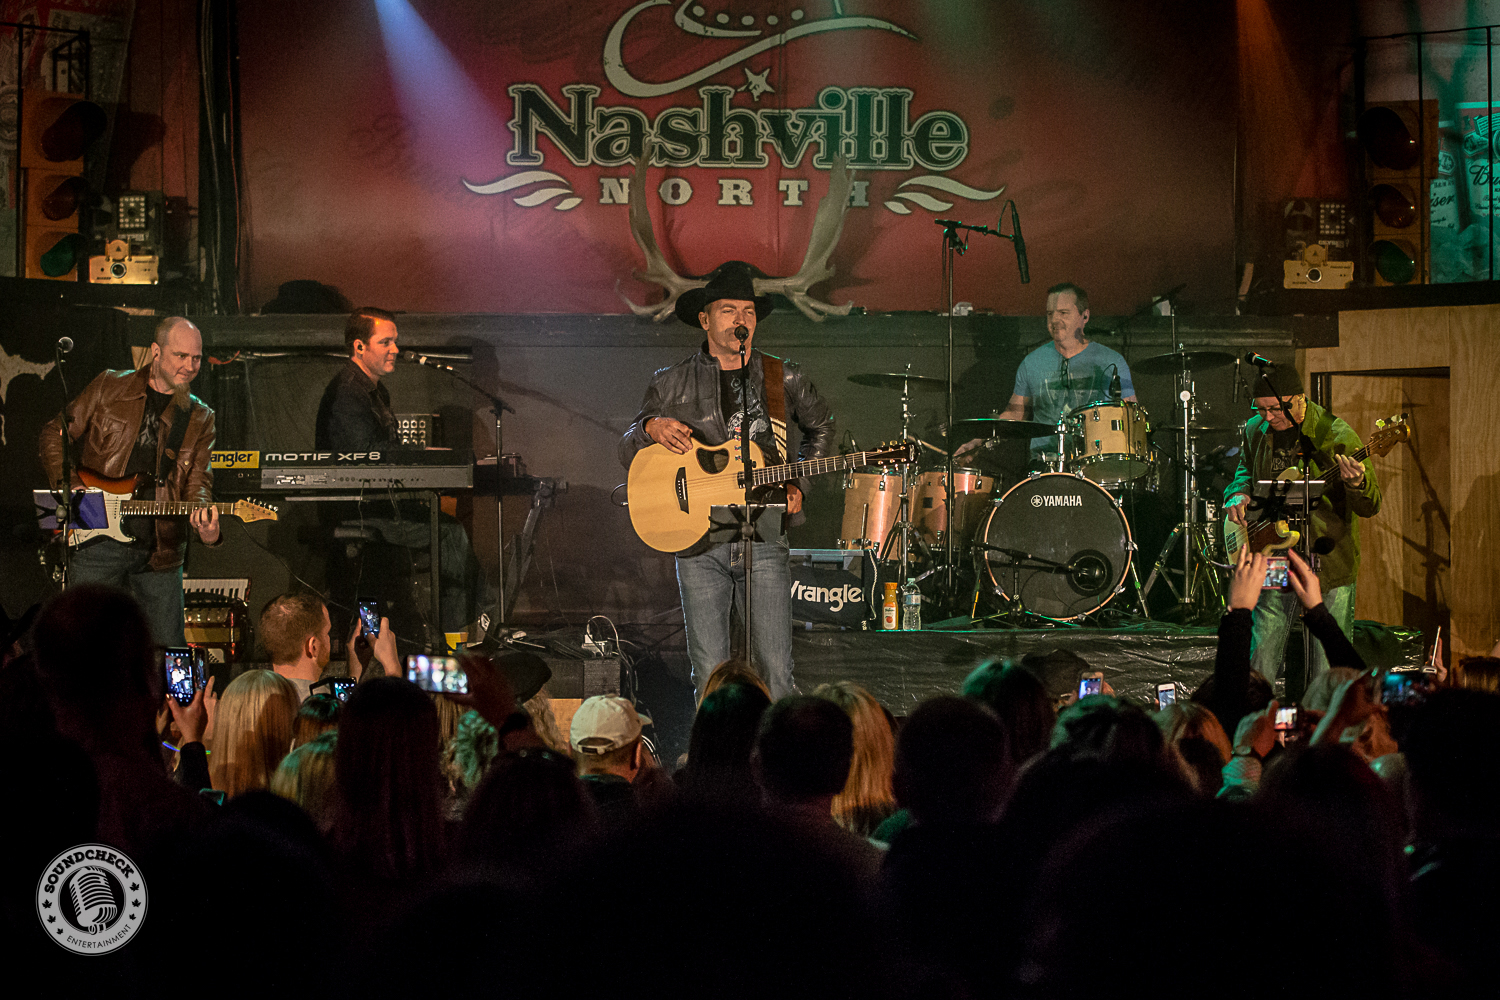 George_Canyon_Nashville_North-1